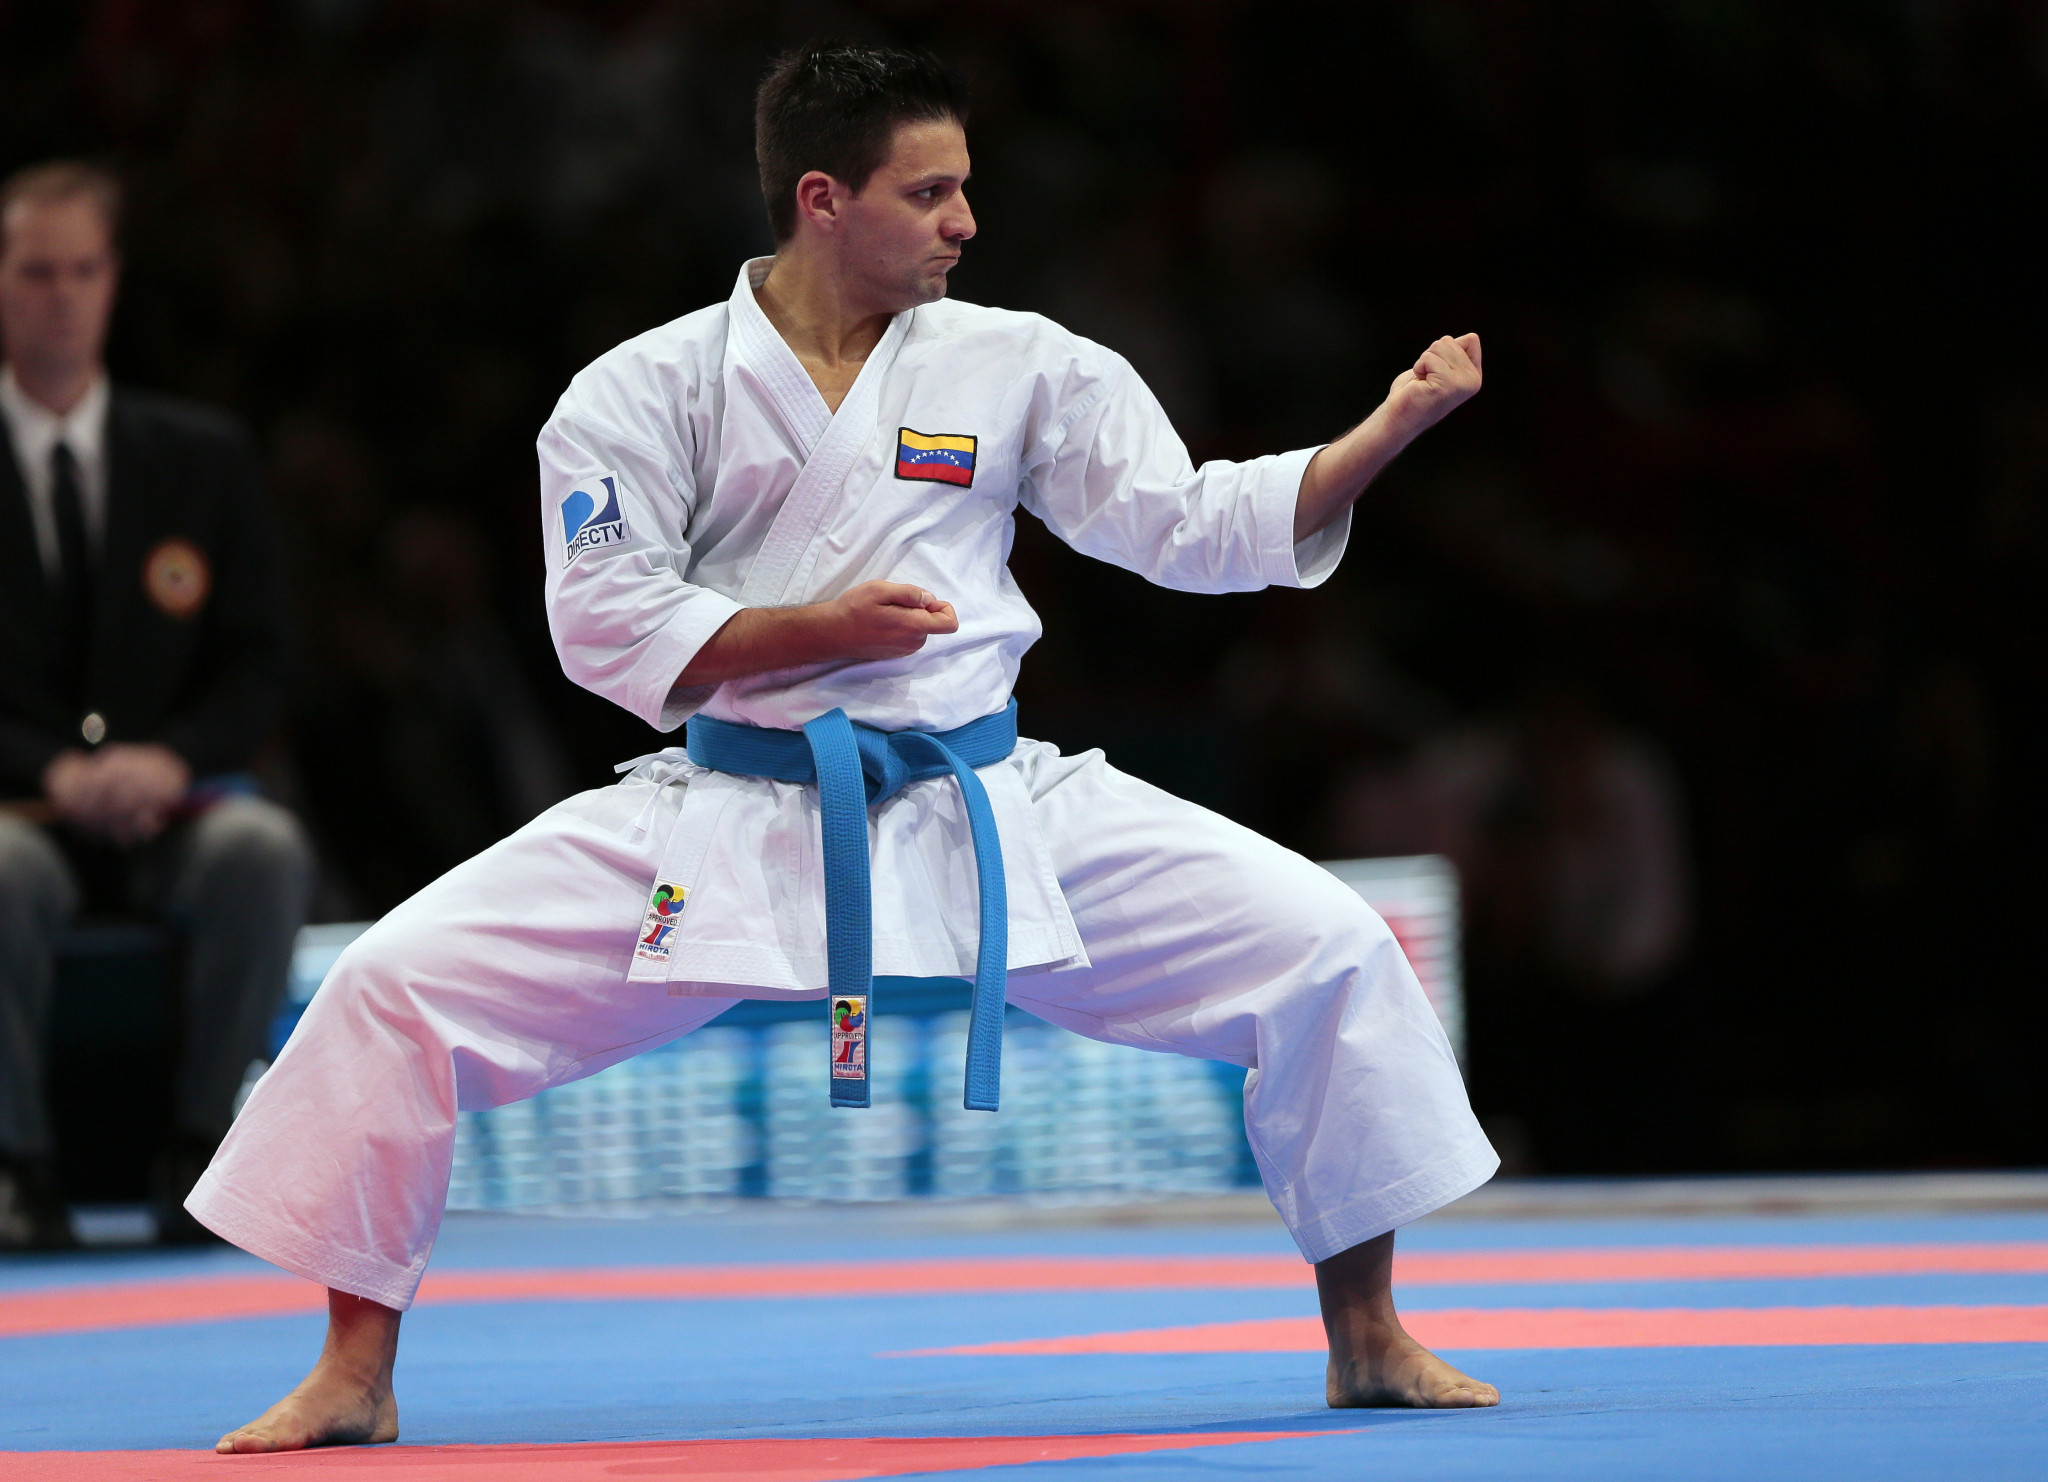 Venezuela's Diaz to headline Pan American Karate Championships yet again when action begins in Panama